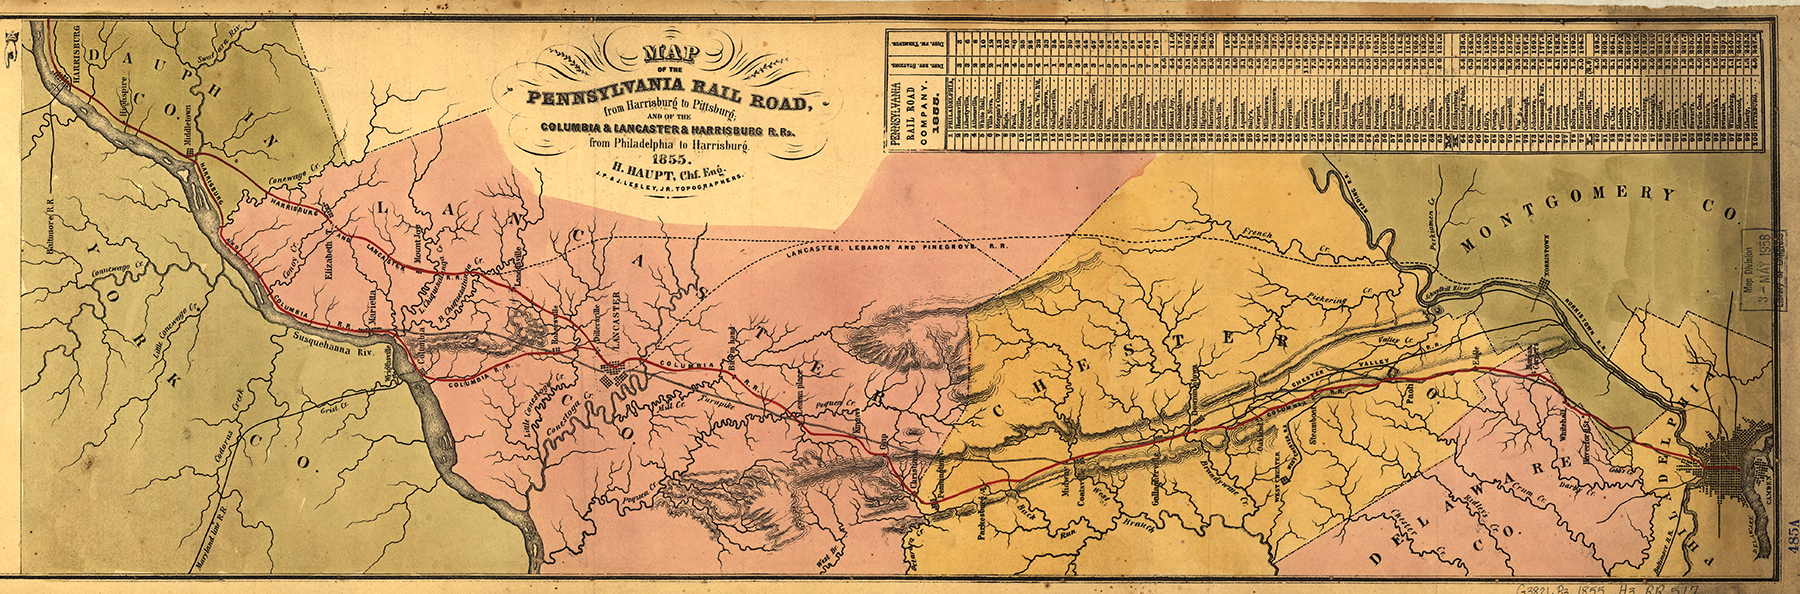 Detail of the 1855 map under Chief Engineer H. P Haupt shows the proposed Lebanon, Lancaster & Pine Grove Railroad (across the upper center area of the map)which would eliminate the need to purchase the State's failing Main Line of Public Works. Though the route was never built the similarities of the line with Downingtown & Lancaster branch makes one wonder if the property had once been considered to be part of the plan had the Commonwealth and the PRR never came to terms. Map collection of the Library of Congress